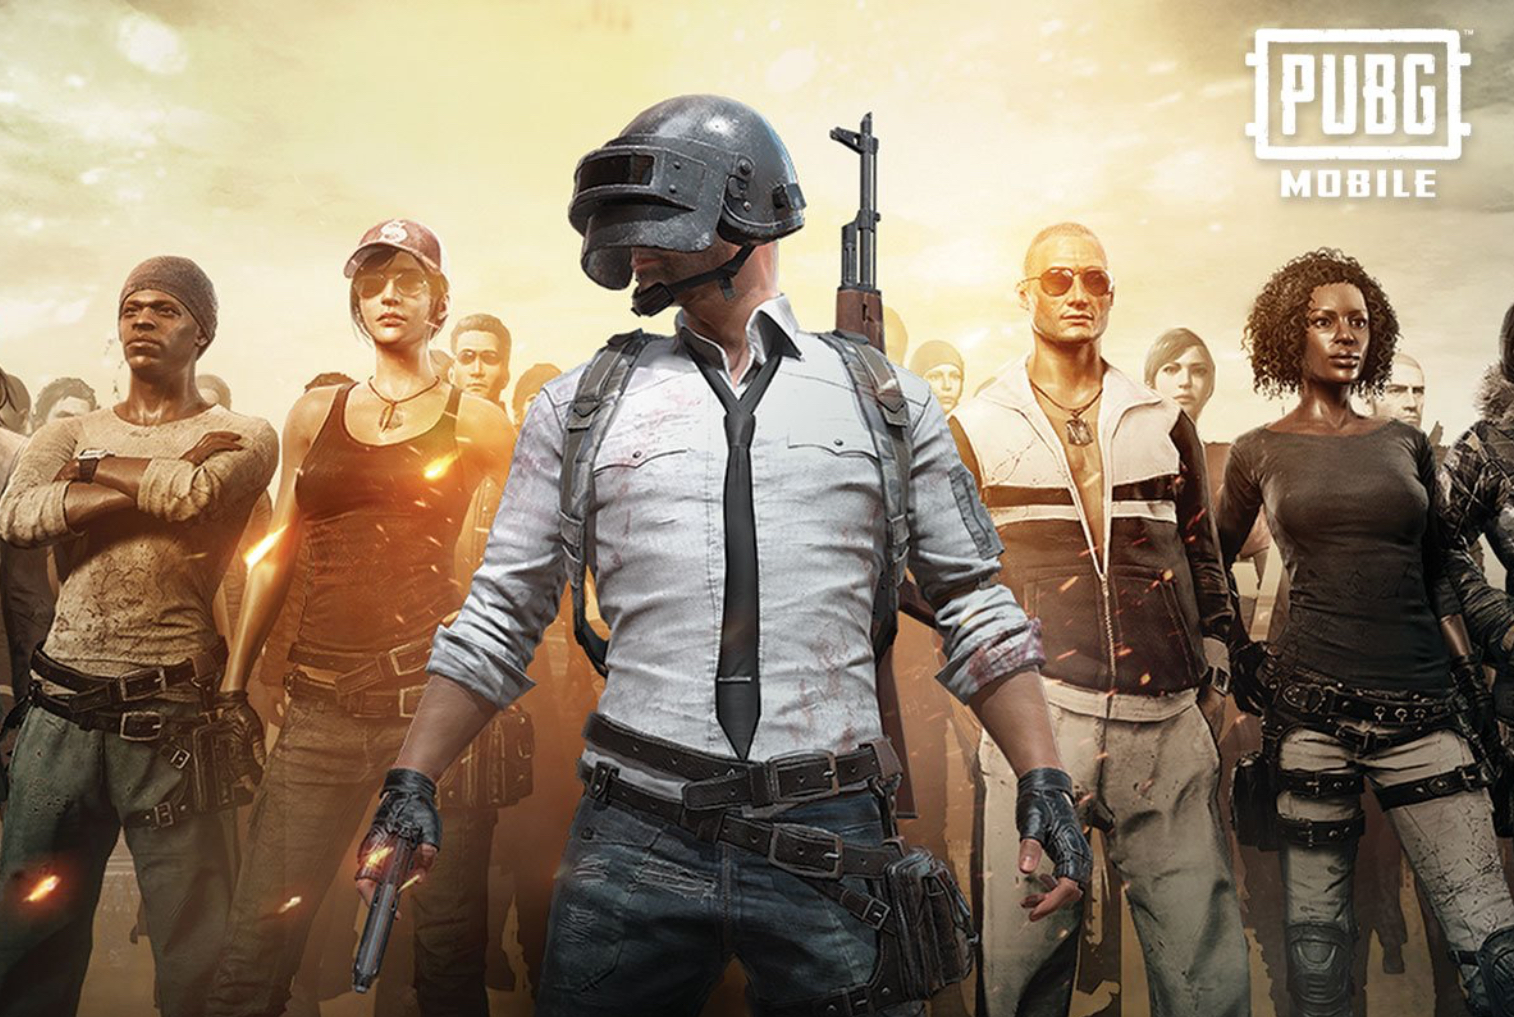 PUBG Mobile' 0 13 5 Beta Is Out Now with the New PP-19 Weapon